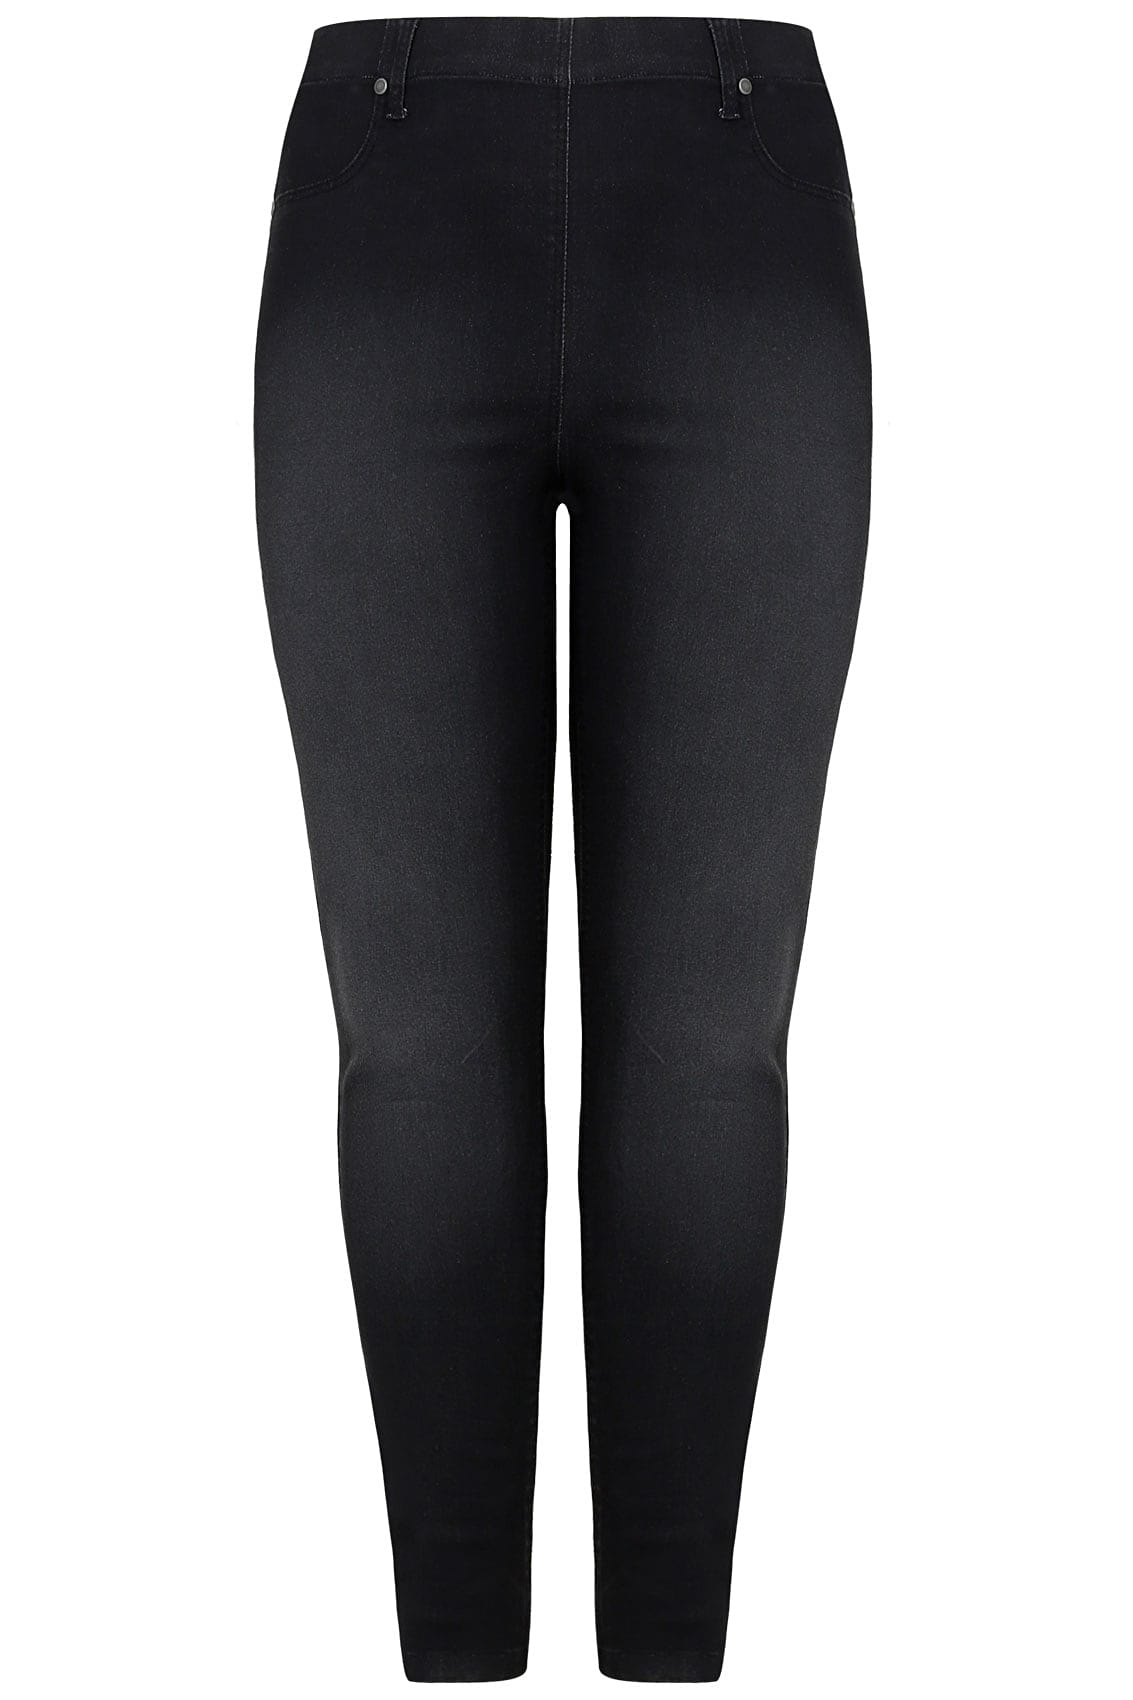 Shop womens jeans ladies fashion denim at M&S. Find best fit boyfriend, skinny, jeggings & high-waist jeans in a variety of washes for casual chic. Buy now.